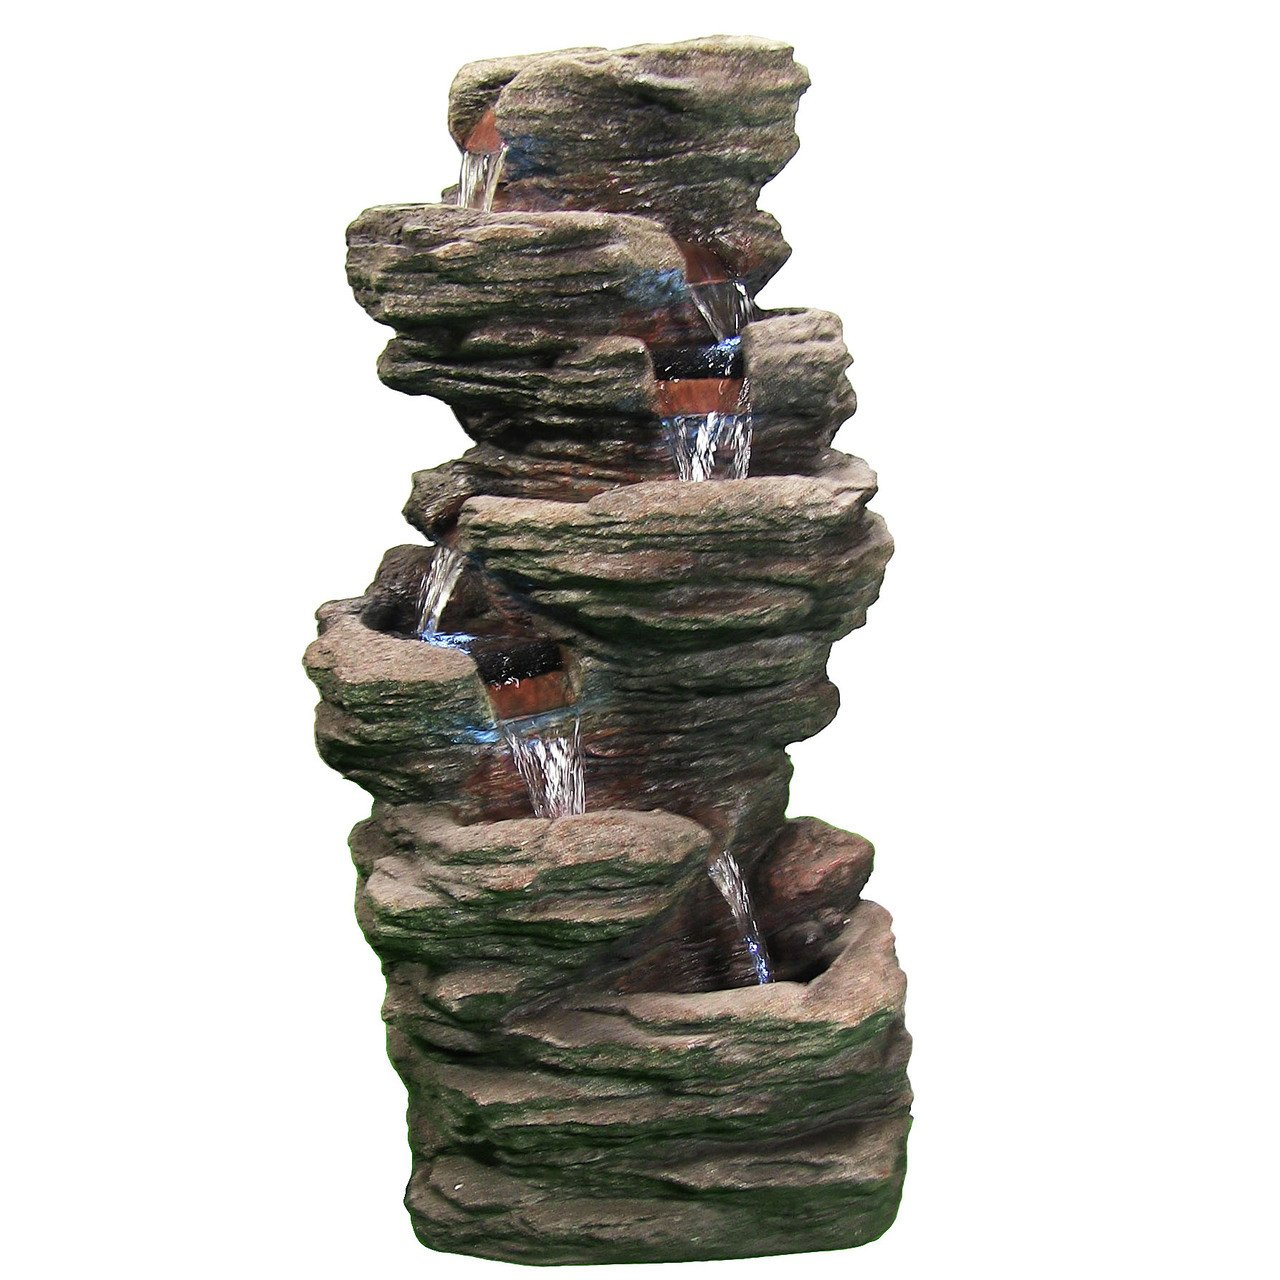 Sunnydaze Multi-Level Flatrock Outdoor Water Fountain with LED Lights, 32 Inch